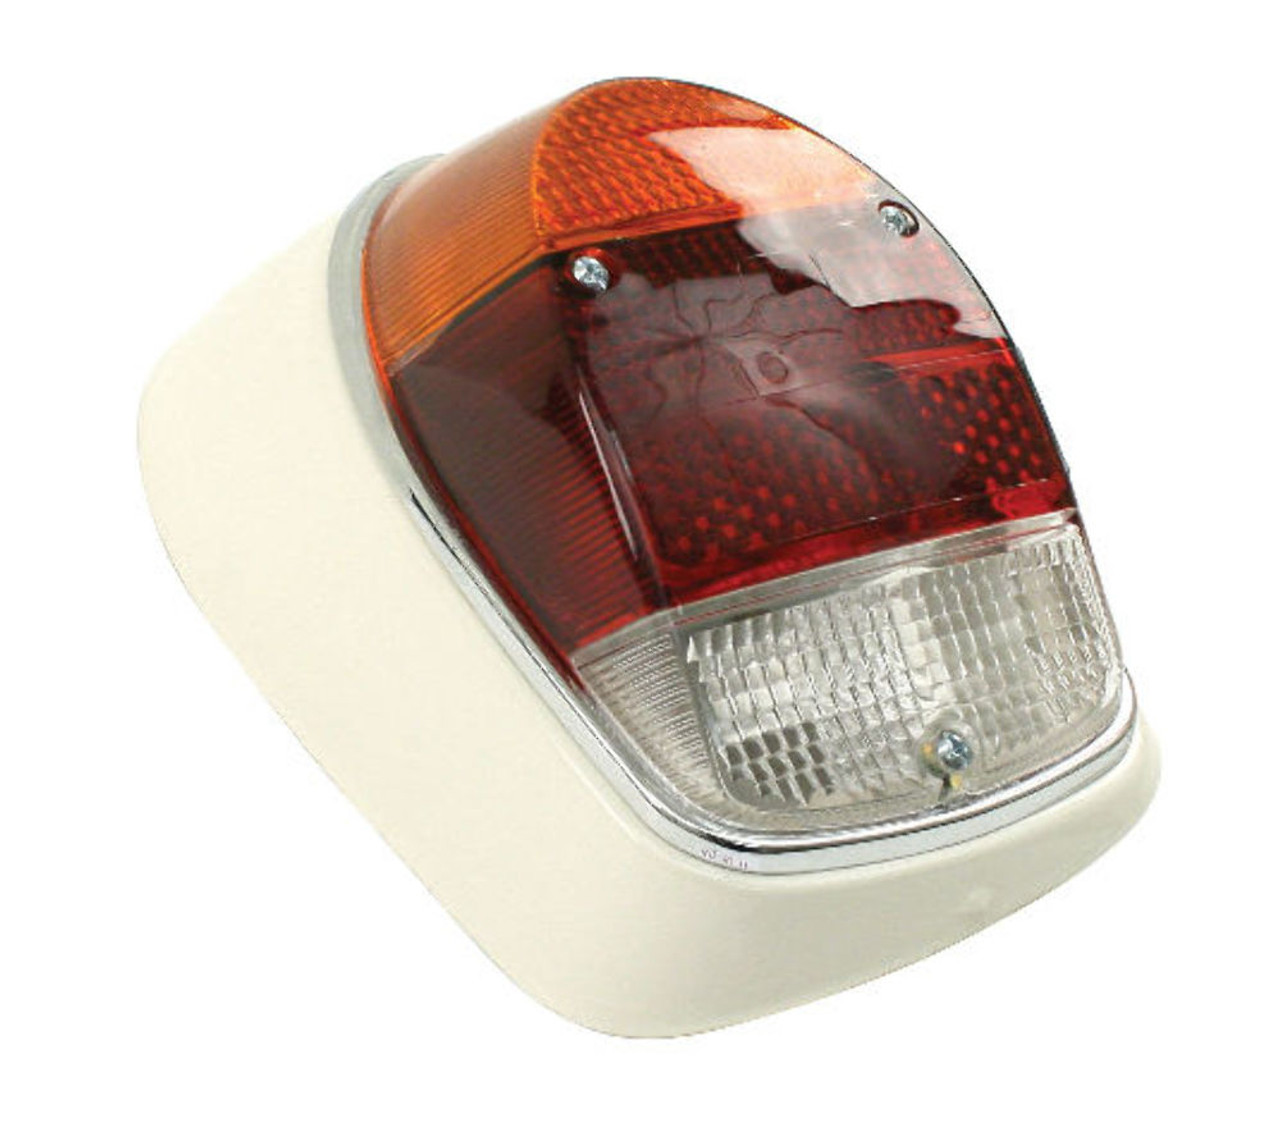 Tail Light Assembly, Left Complete, Euro Style, Fits VW Bug 1968-70, EMPI 98-1091-B